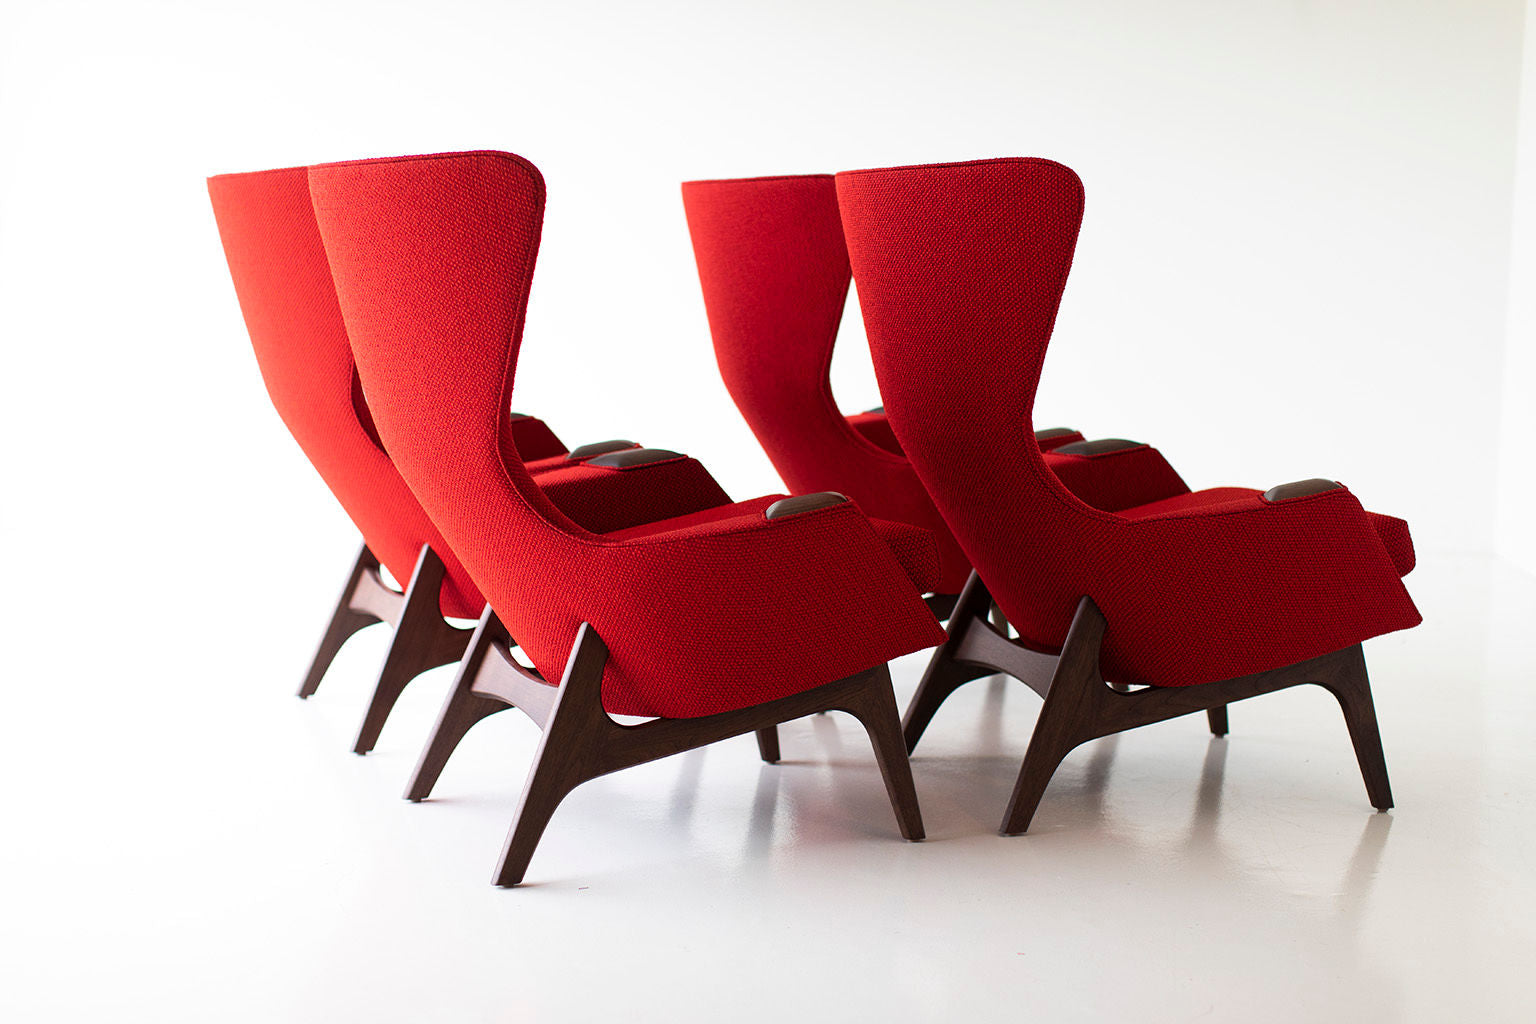 0T3A8940-Red-Wing-Chairs-05